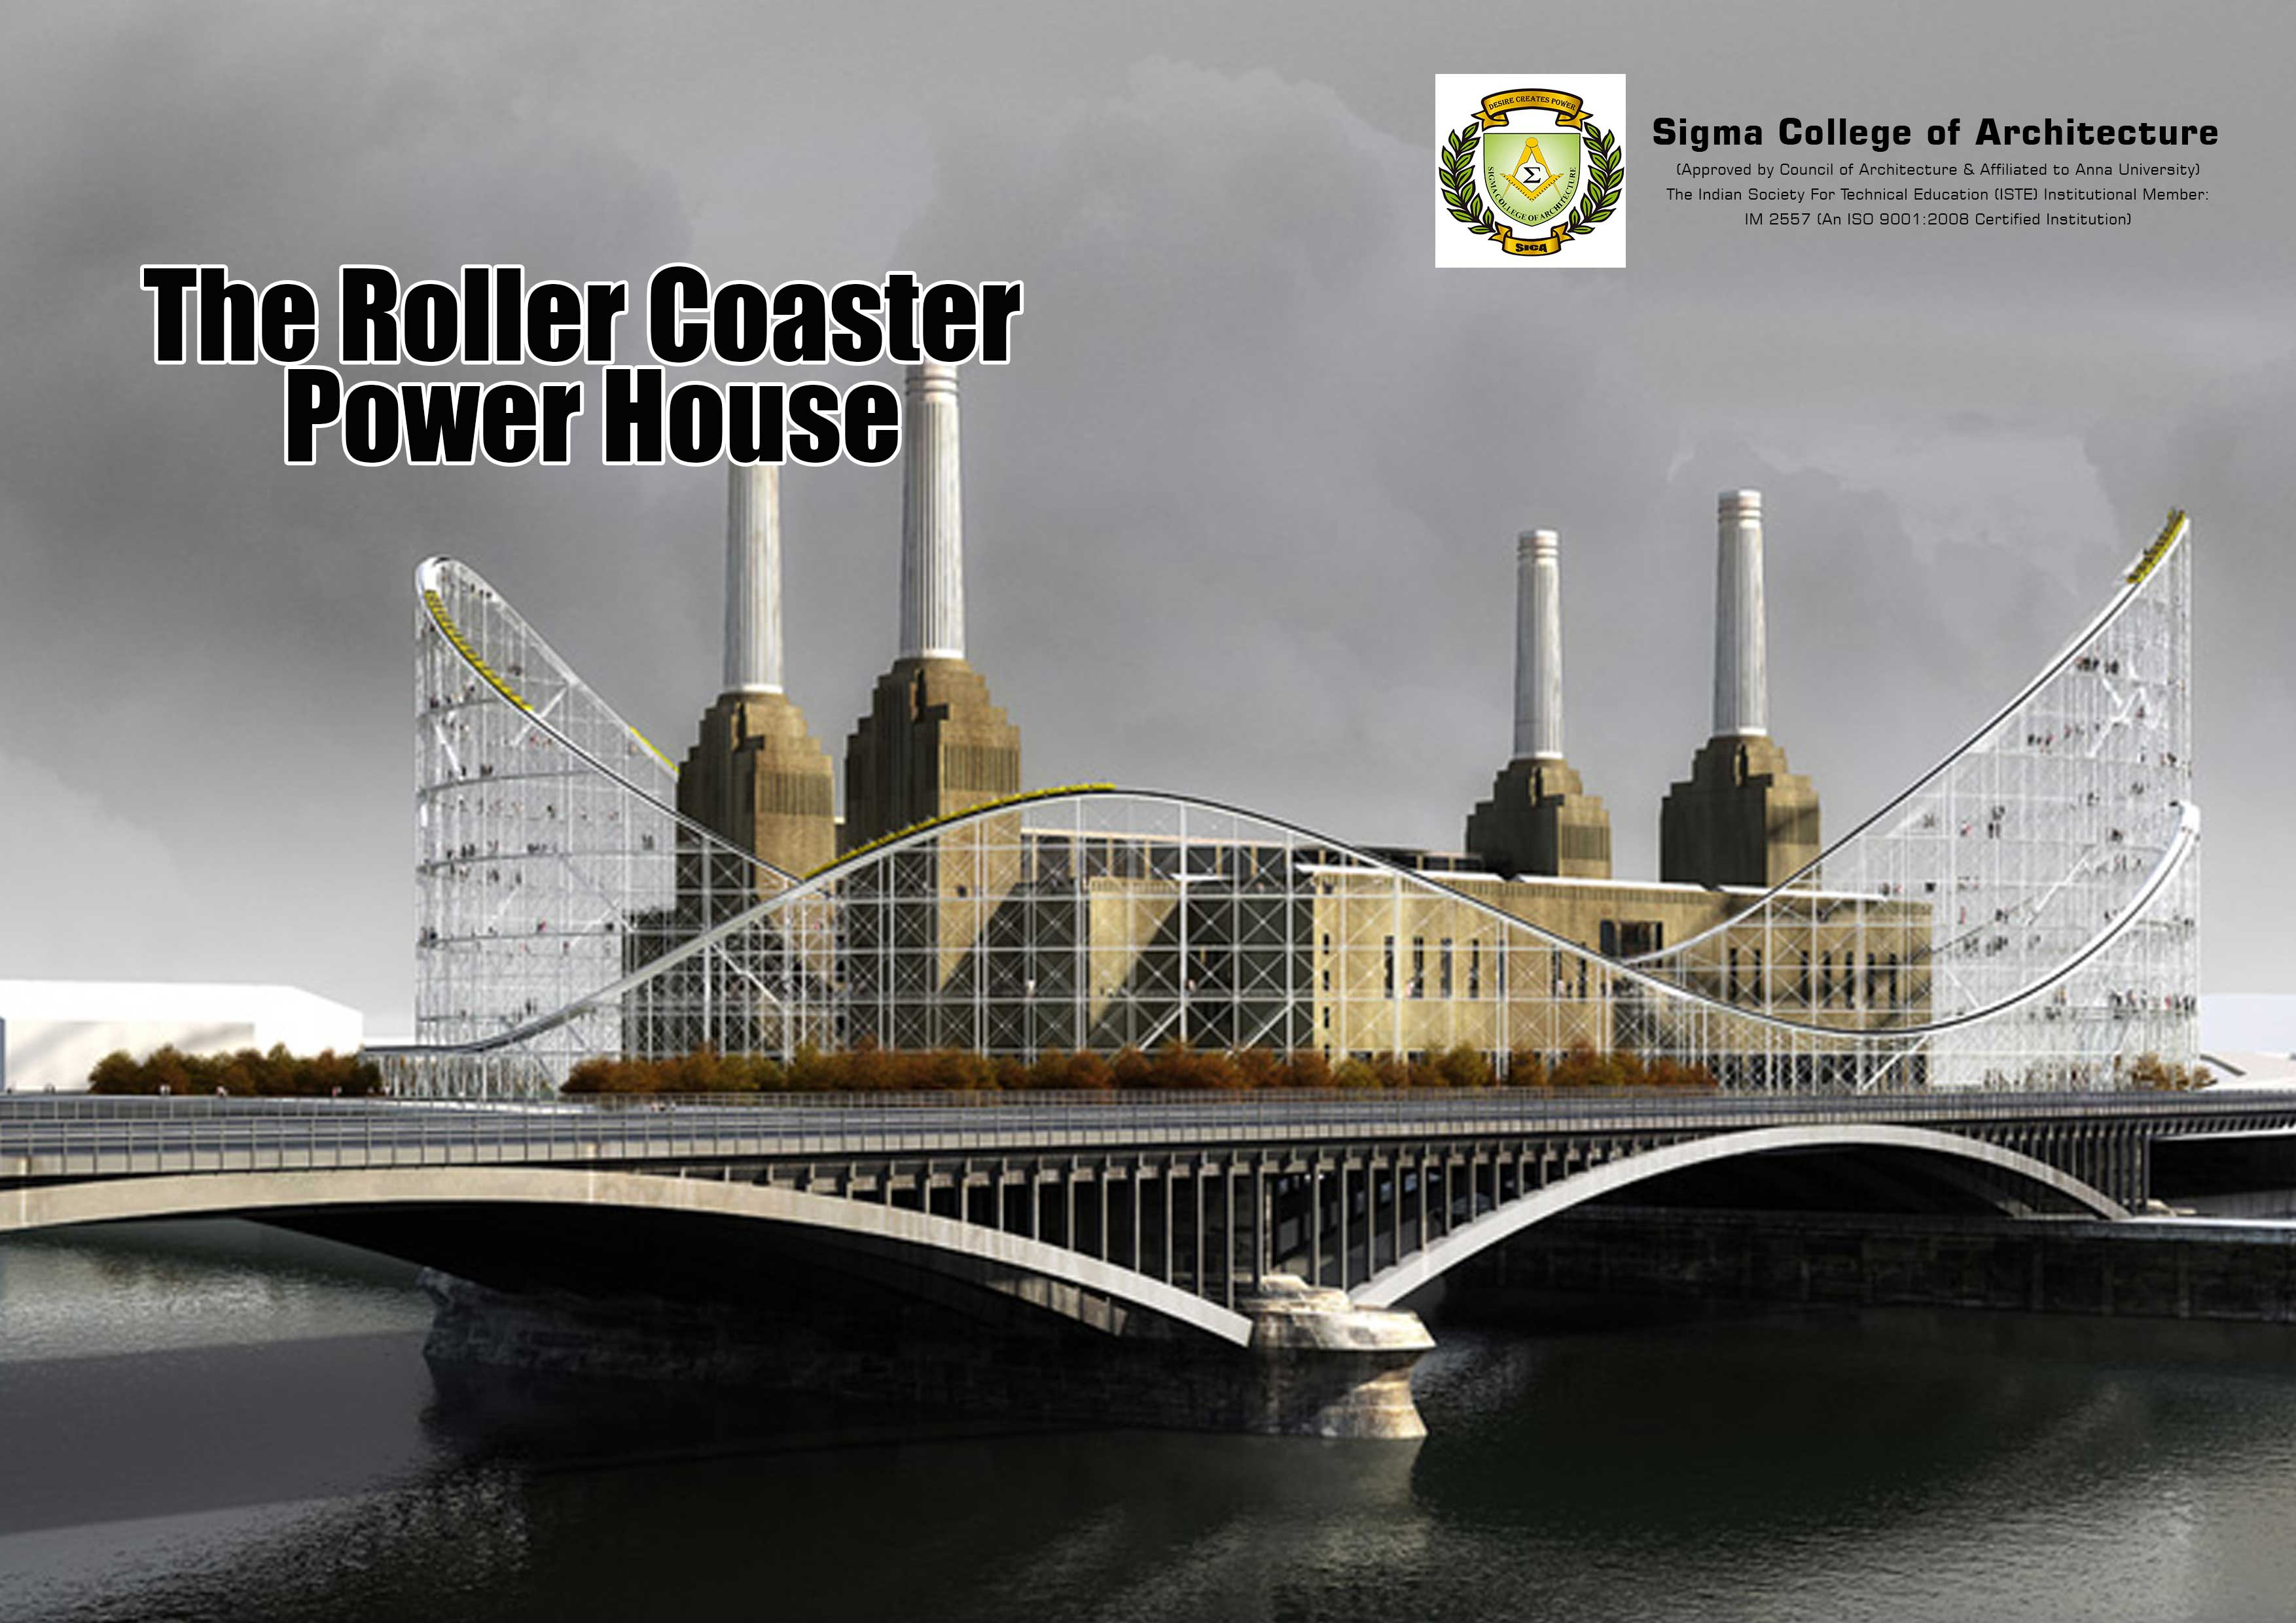 The Roller Coaster Power House